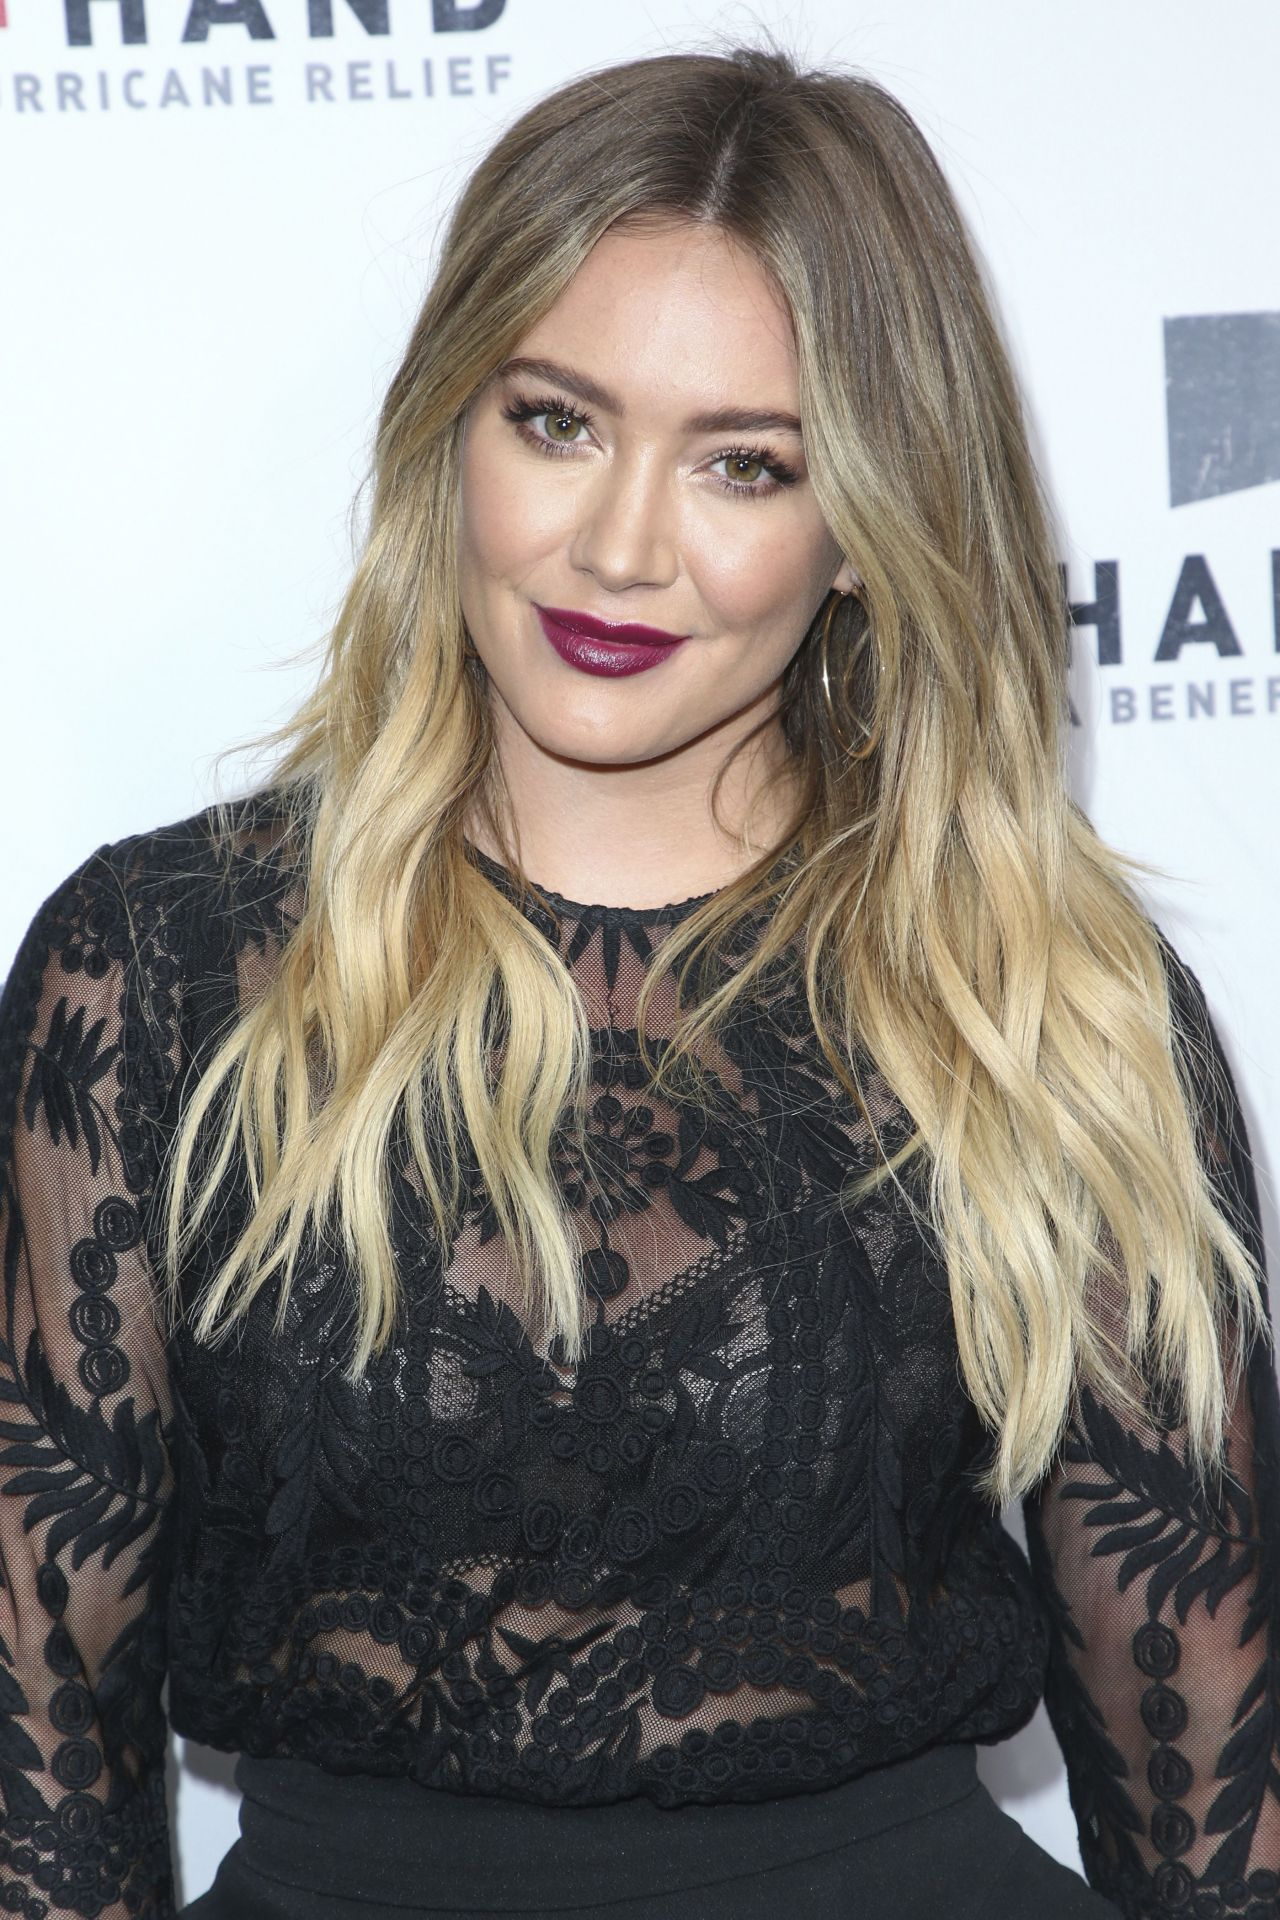 Hilary Duff Latest Photos - CelebMafia Hilary Duff